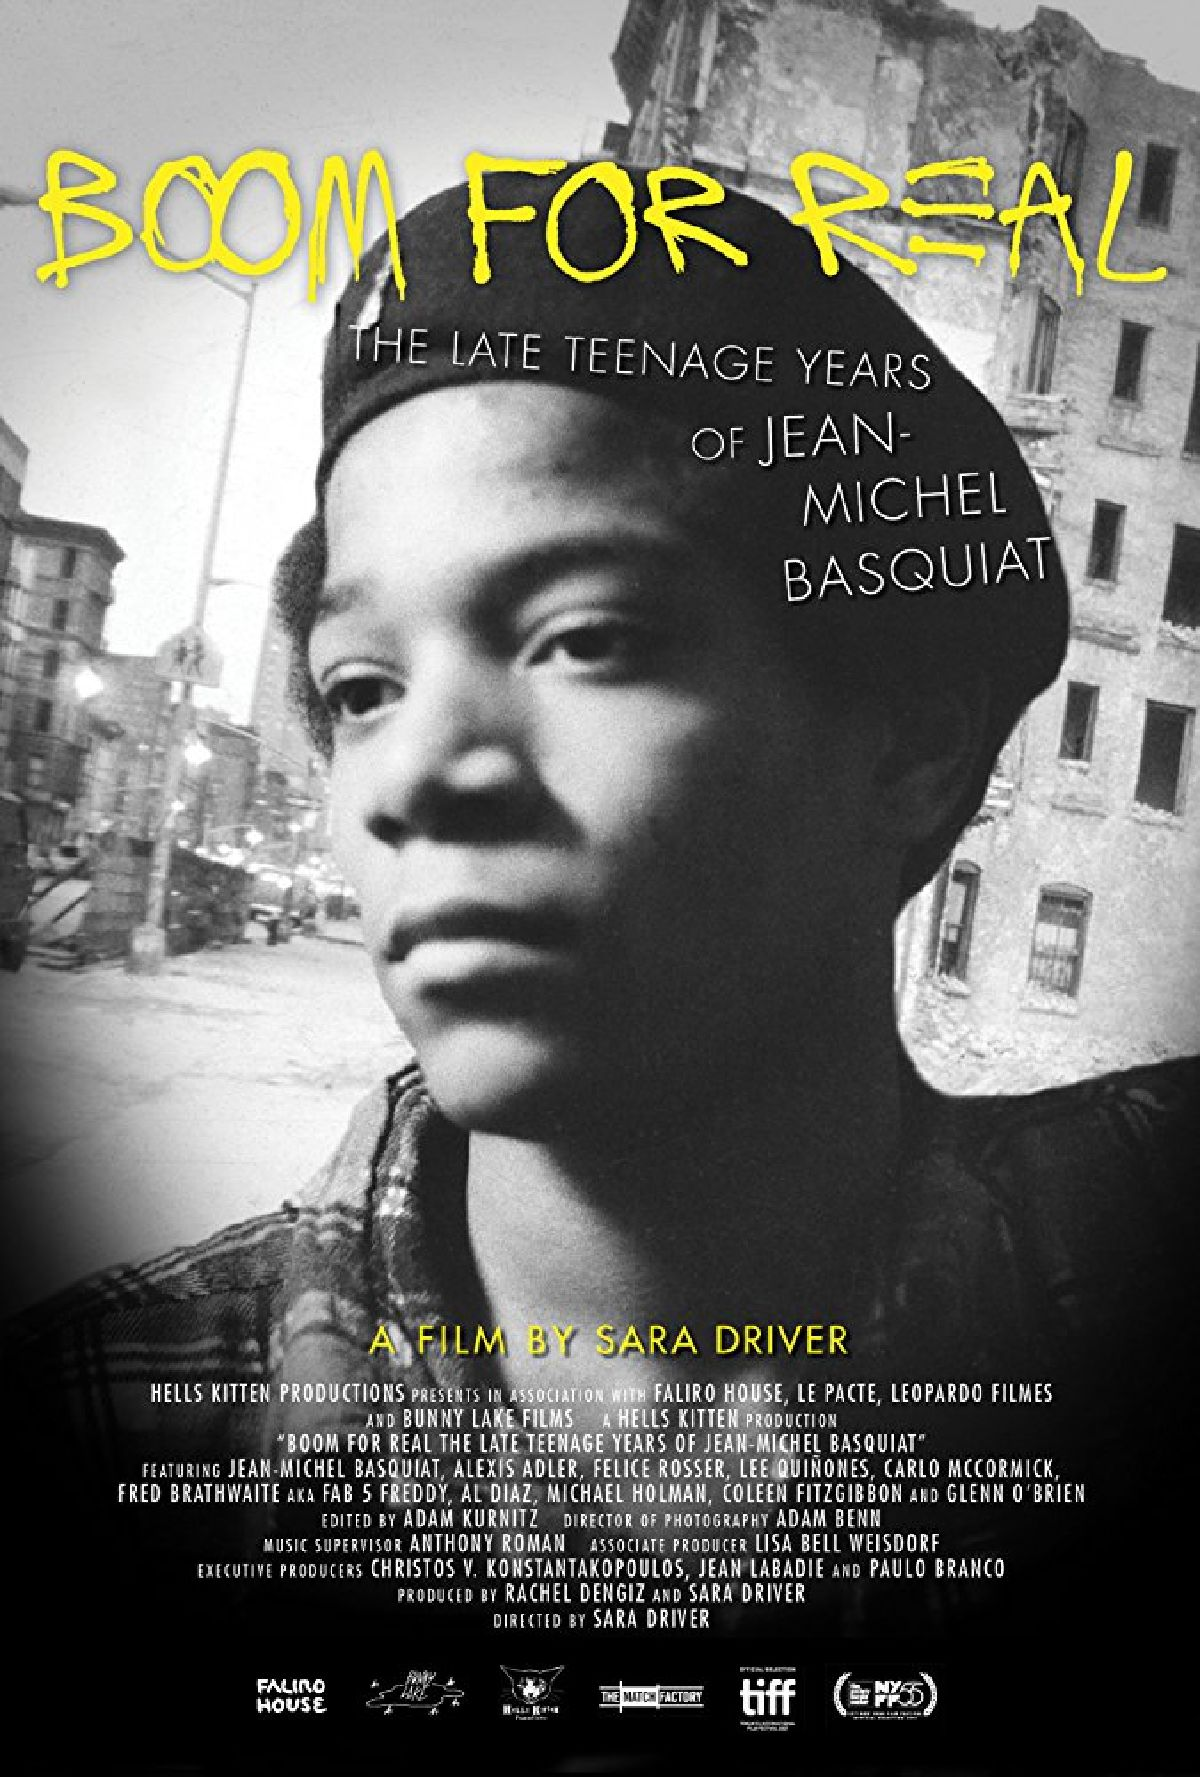 'Boom For Real: The Late Teenage Years Of Jean-Michel Basquiat' movie poster